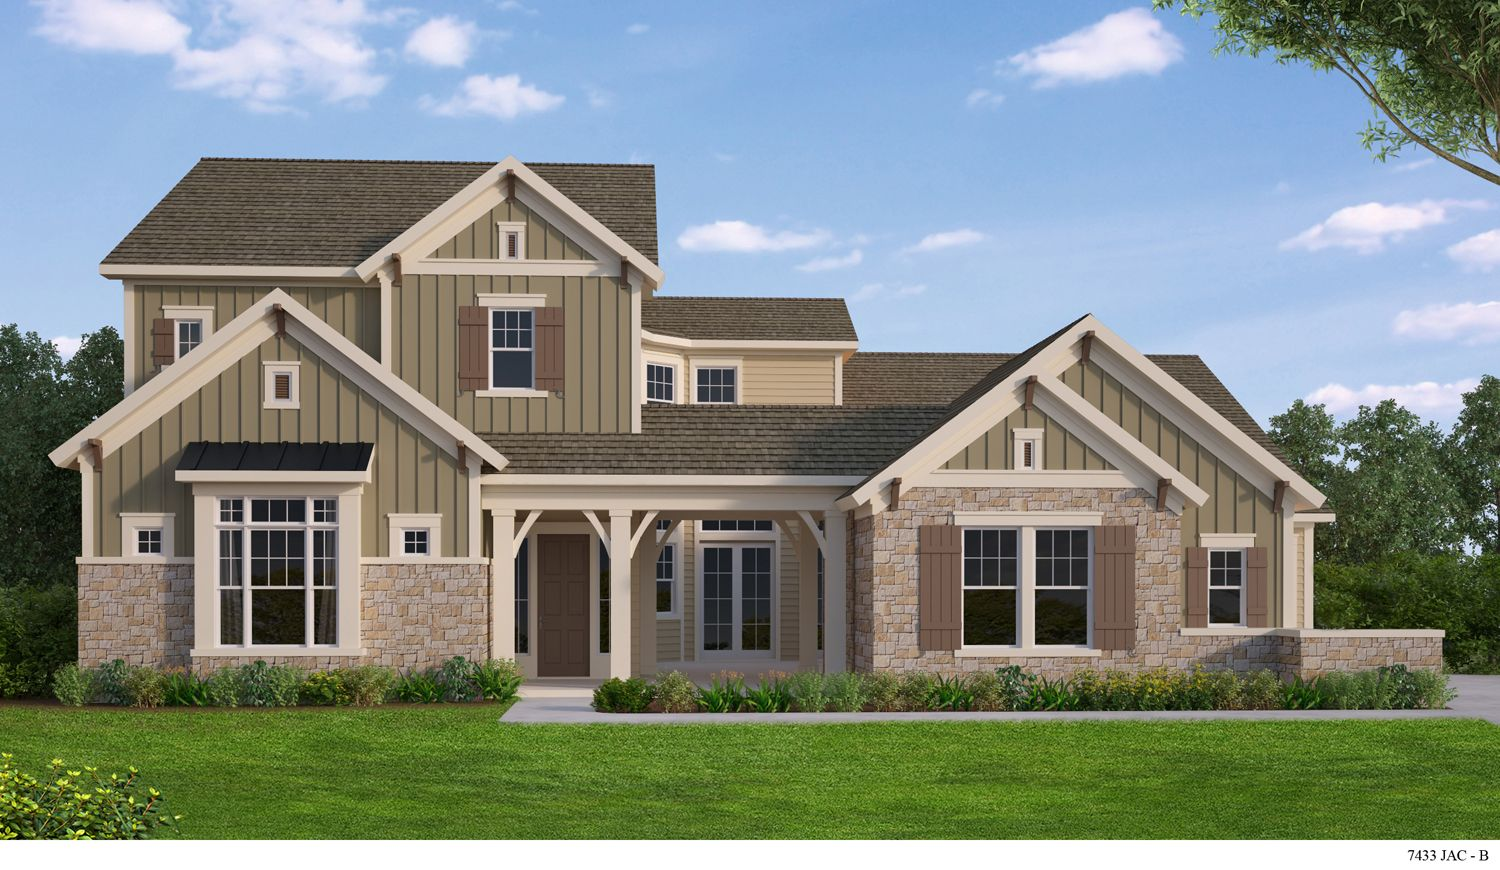 Find the perfect home for sale in jacksonville david weekley homes is a top custom home builder in jacksonville and has your new florida home waiting